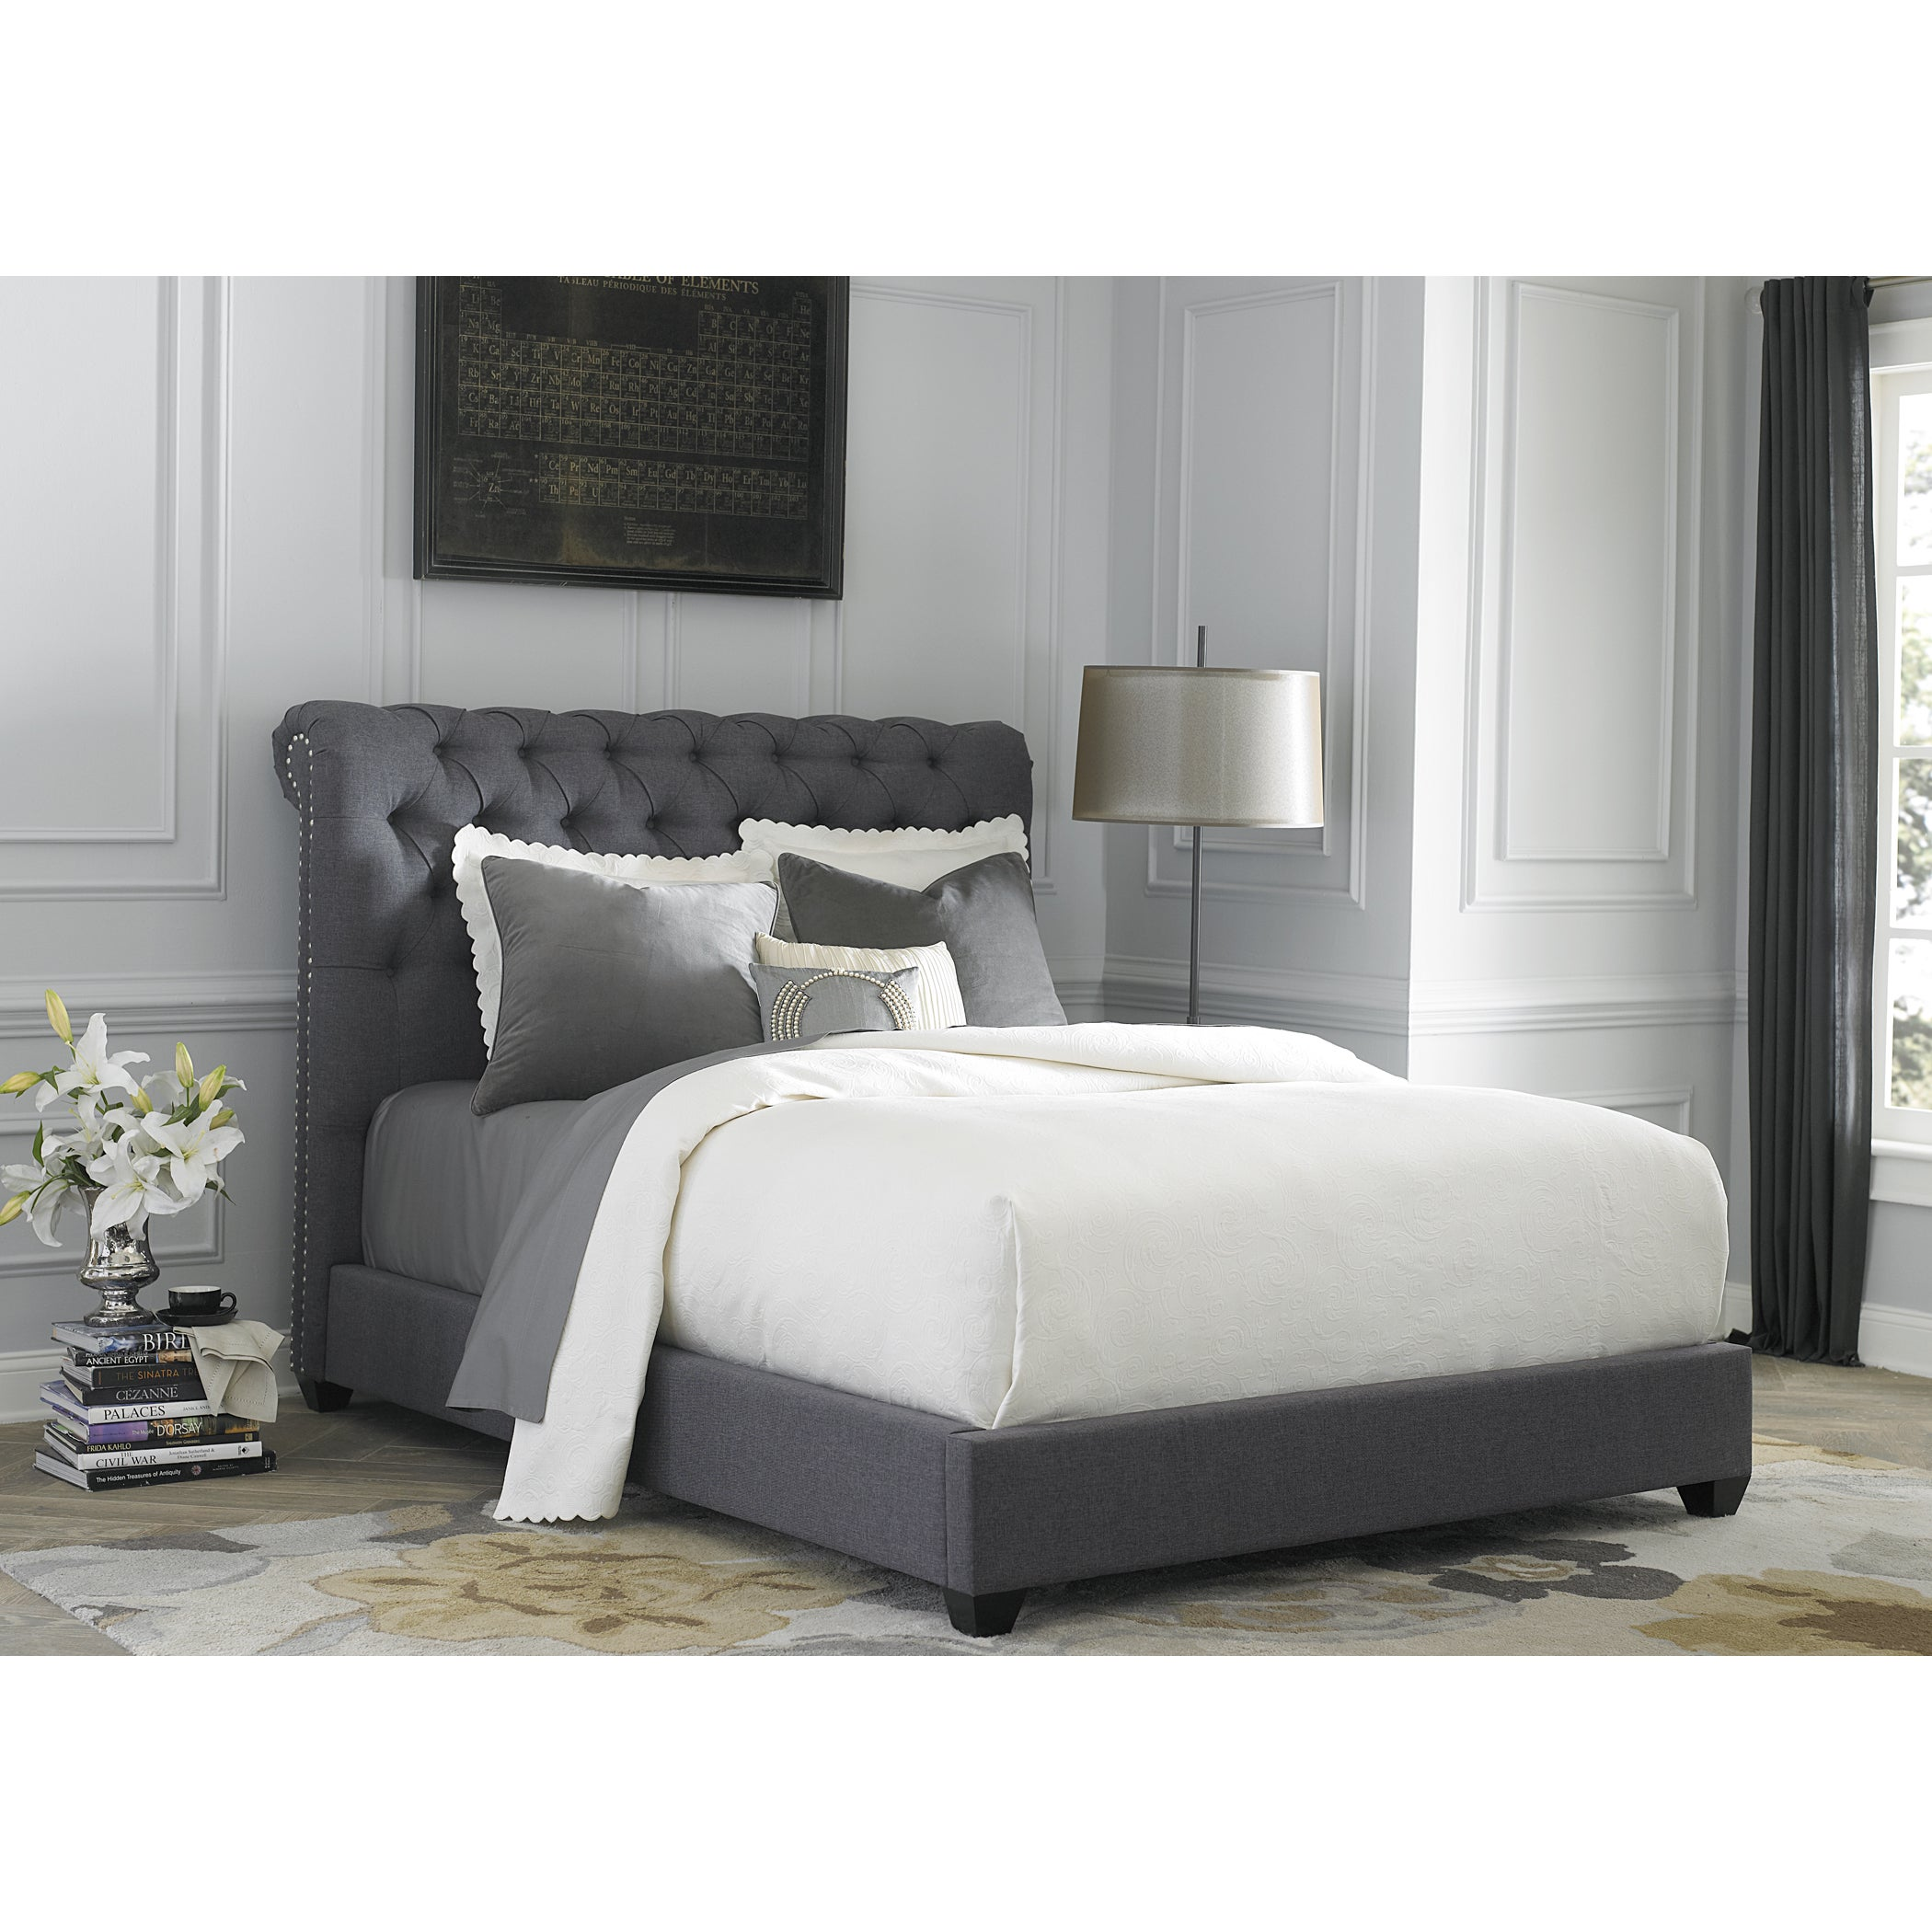 white upholstered beds. Dark Gray Linen Chesterfield Sleigh Upholstered Bed Set - Free Shipping Today Overstock 17839489 White Beds O